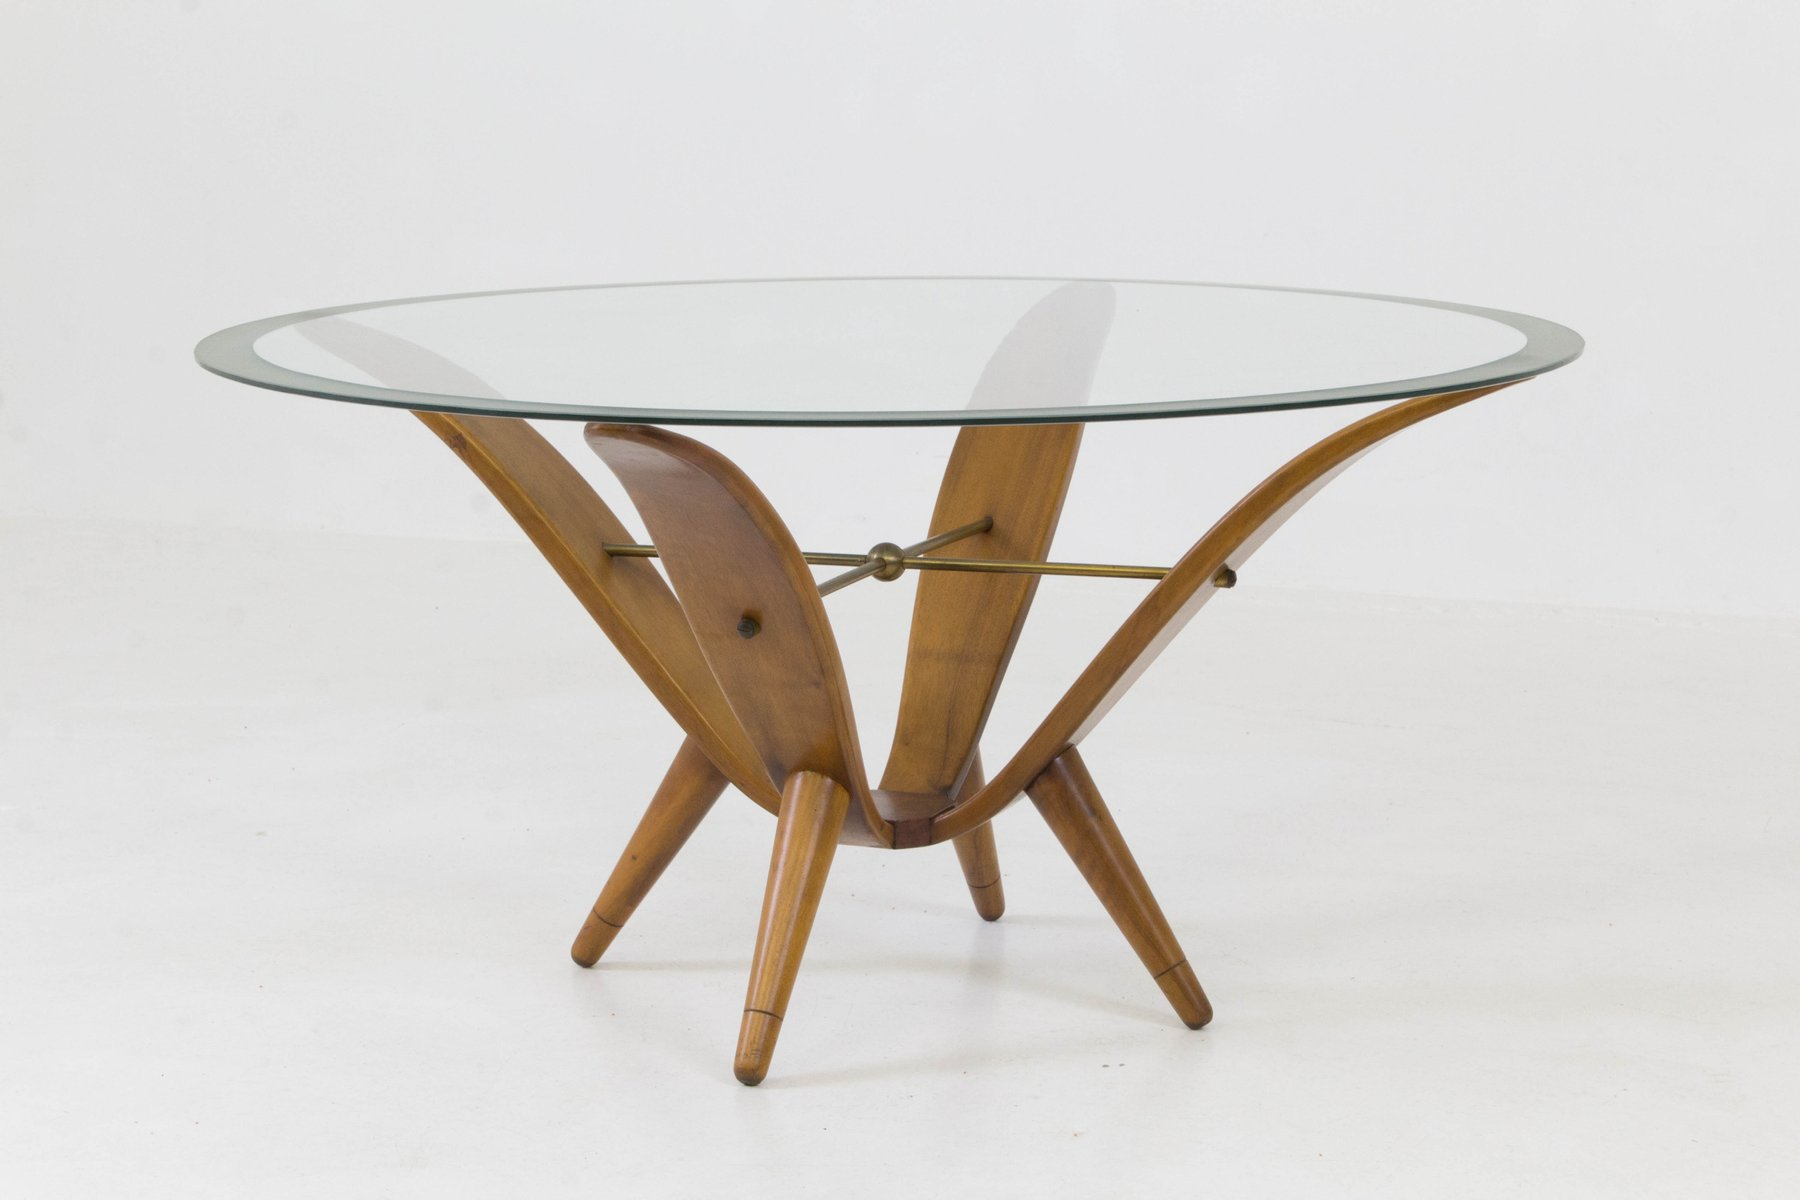 Italian mid century modern coffee table 1950s for sale at for Modern coffee table sale